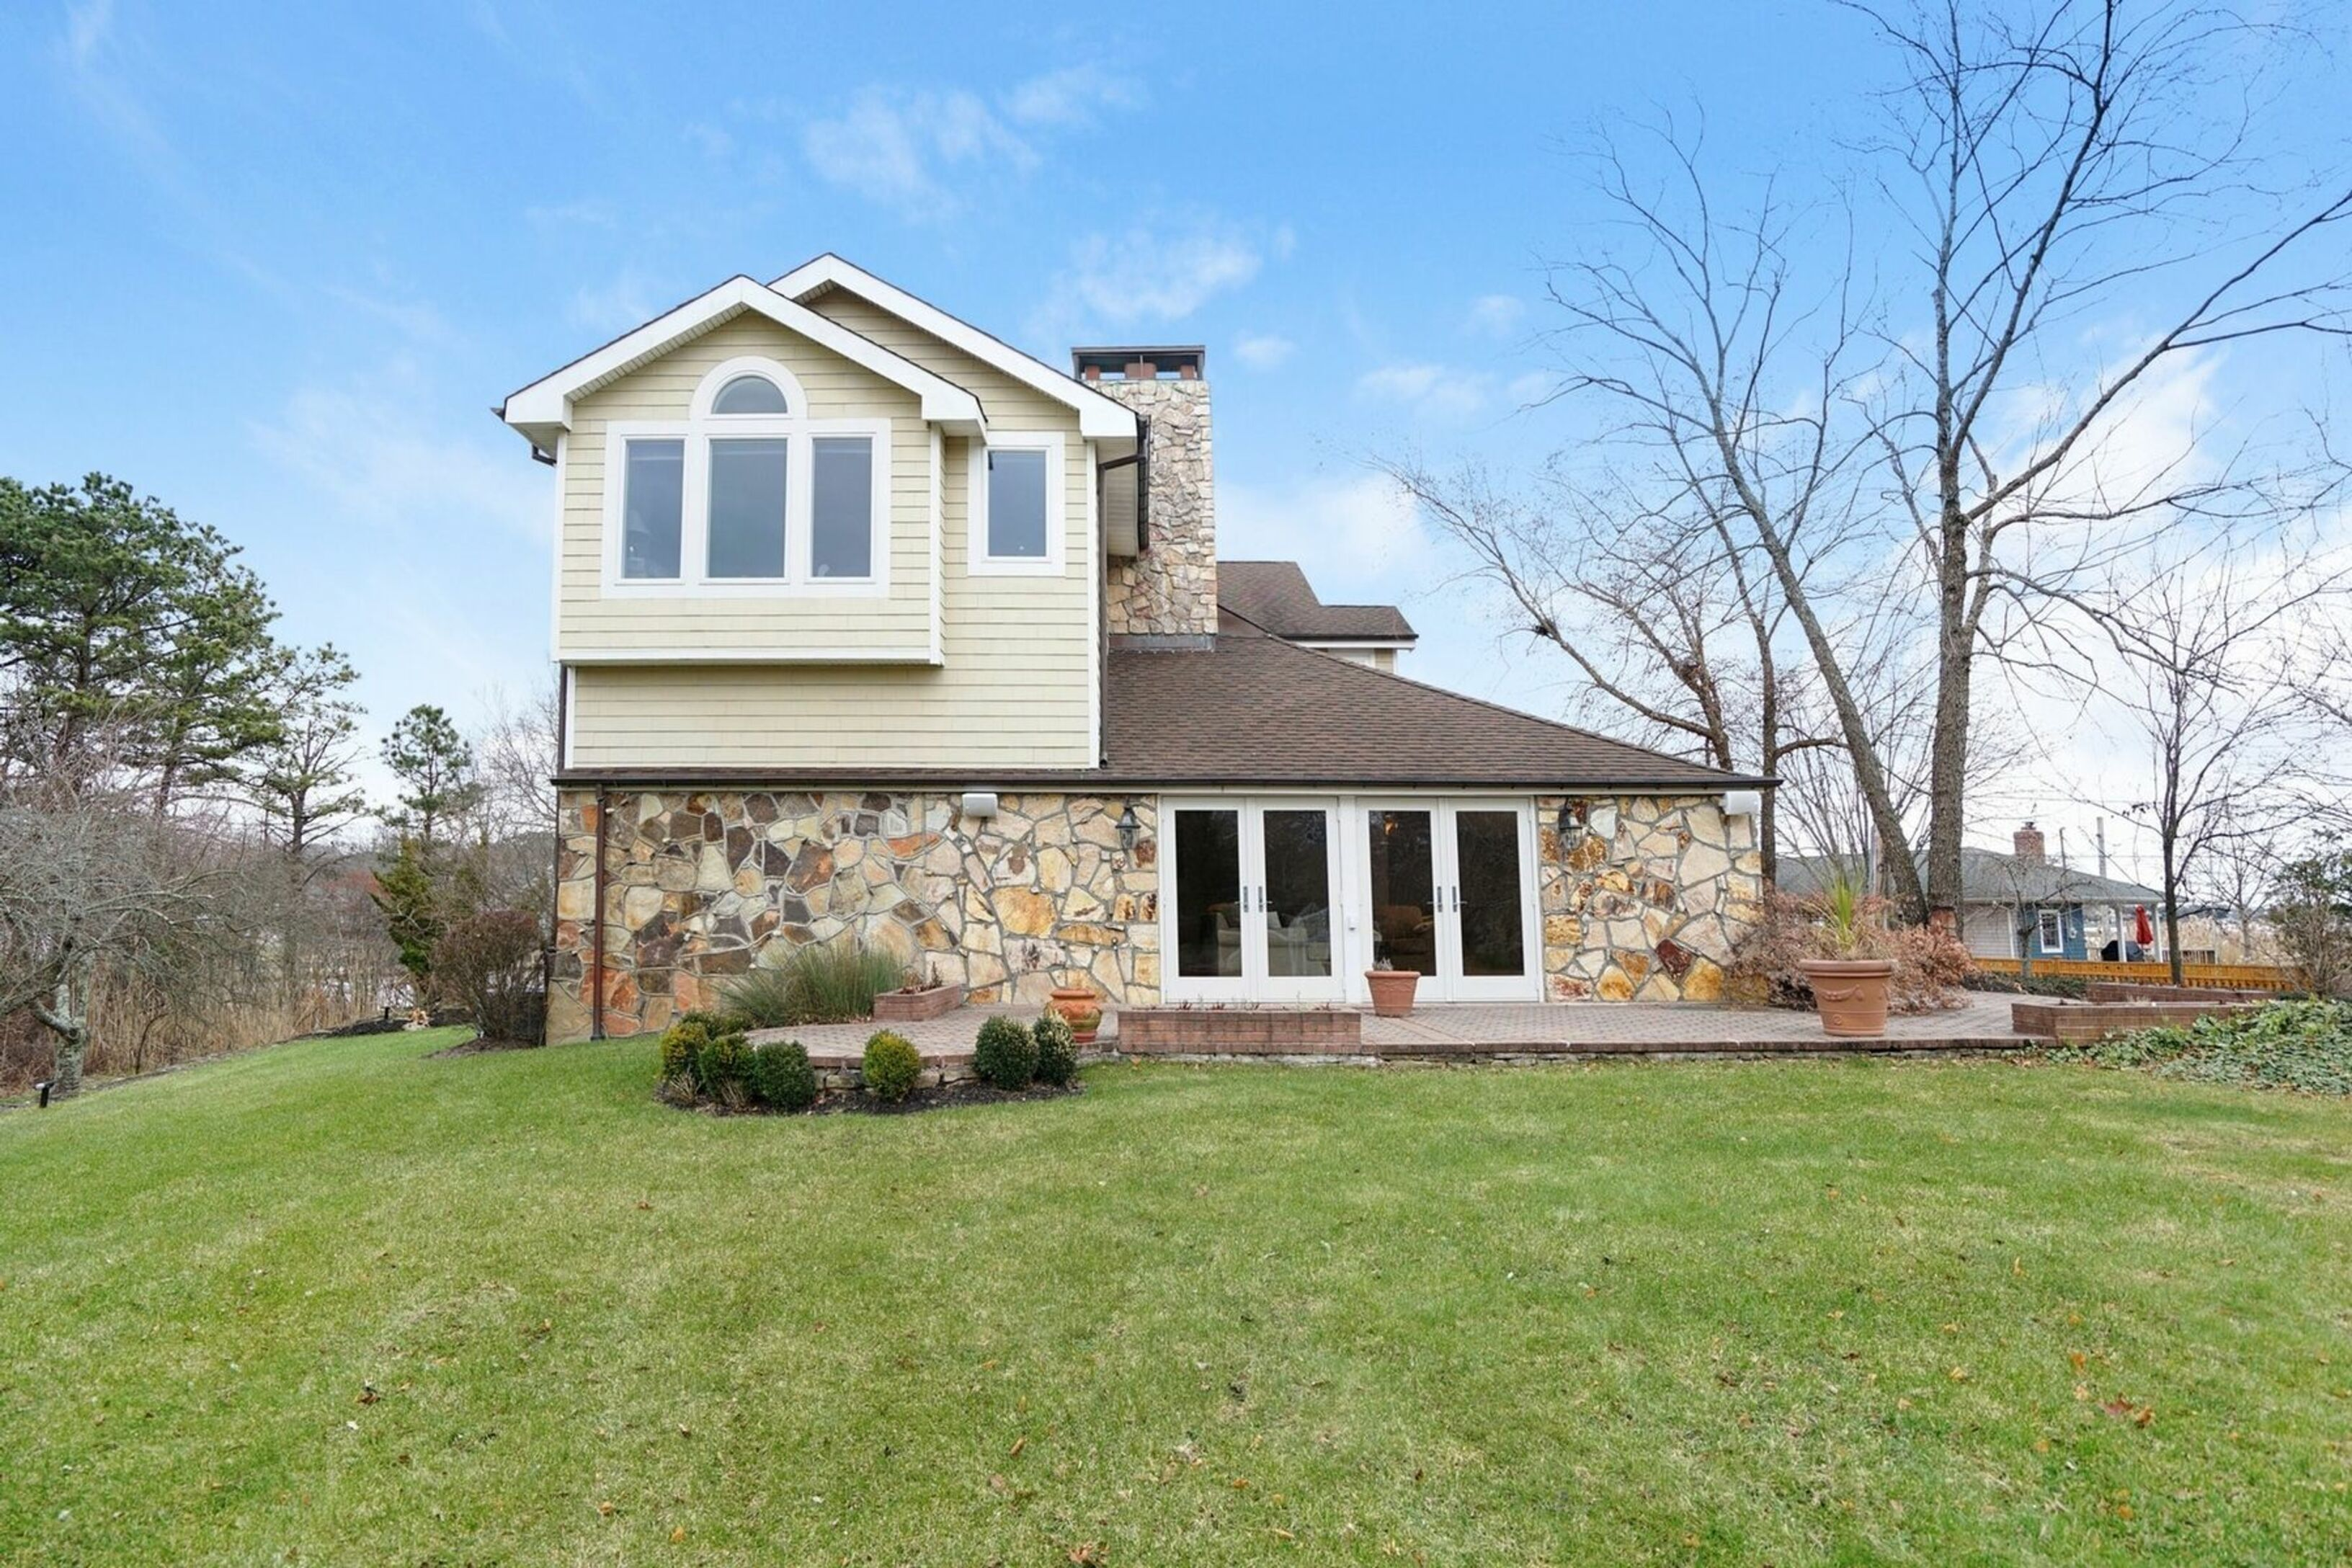 27 B West Tiana Rd - Hampton Bays, New York